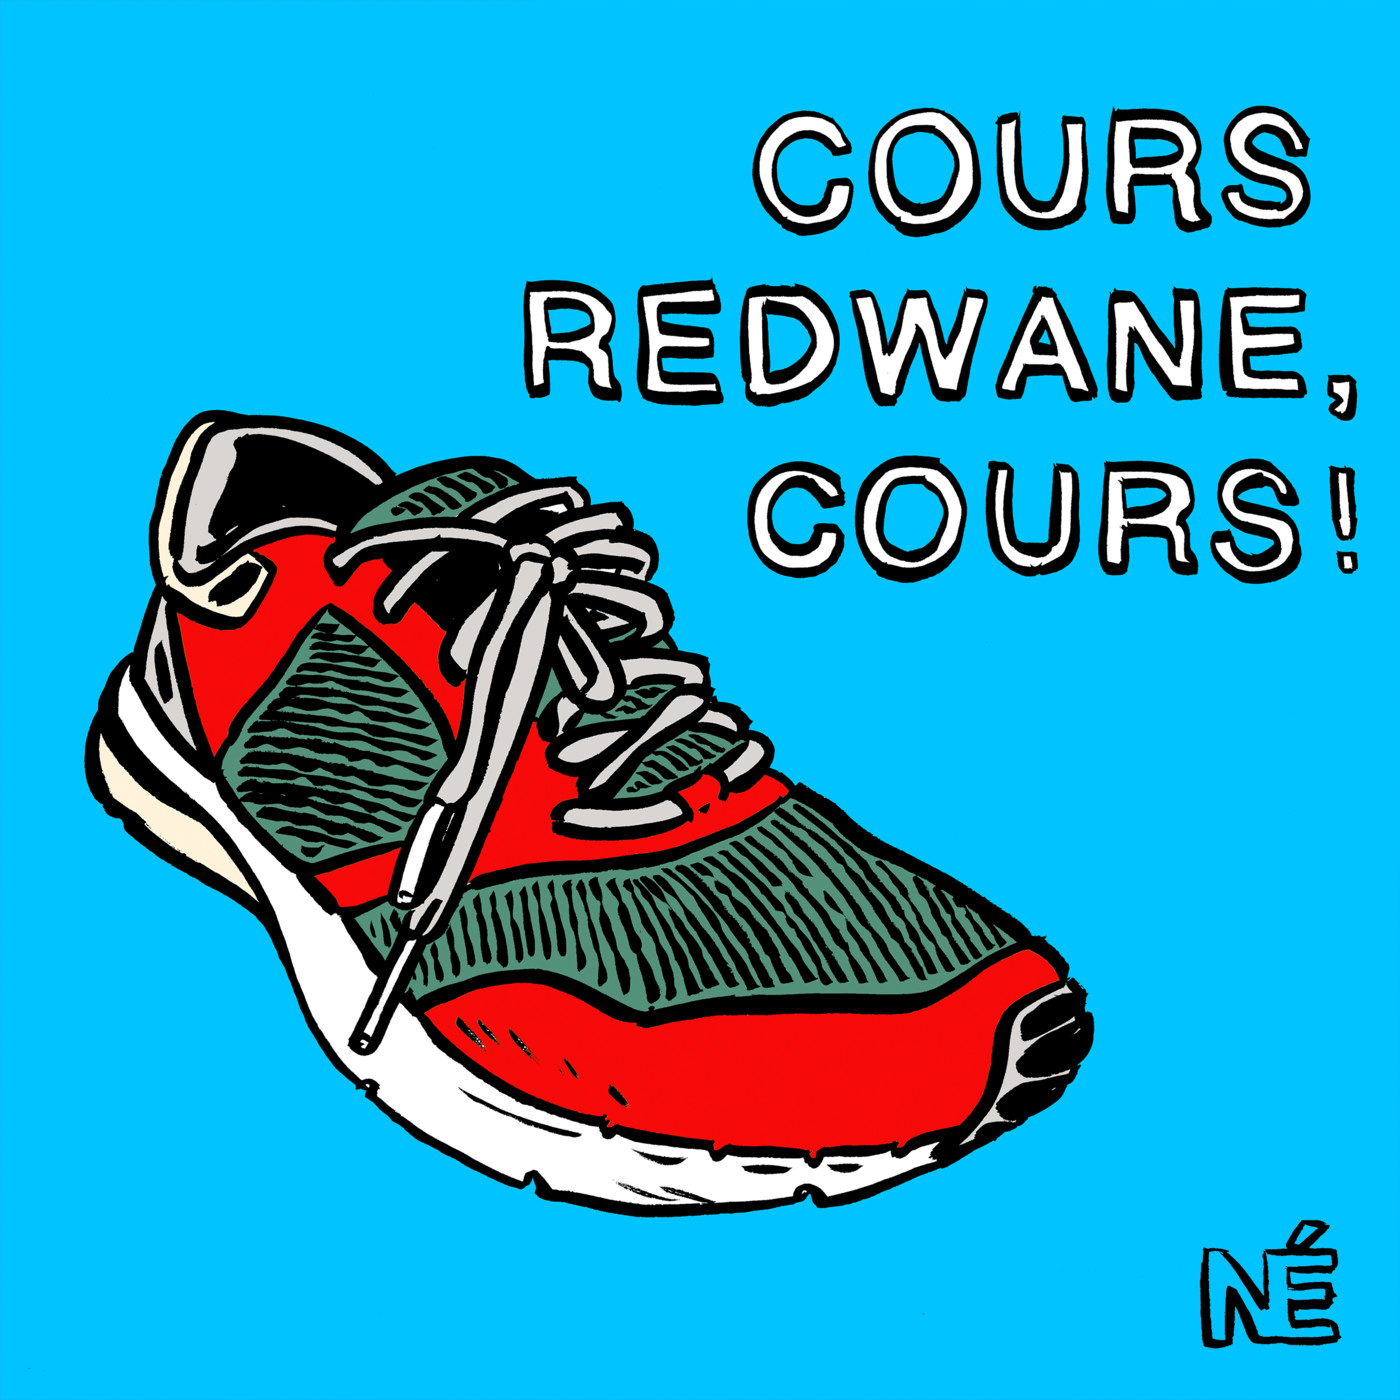 cours redwane cours - KM 42 Podcast running par Bertrand Soulier